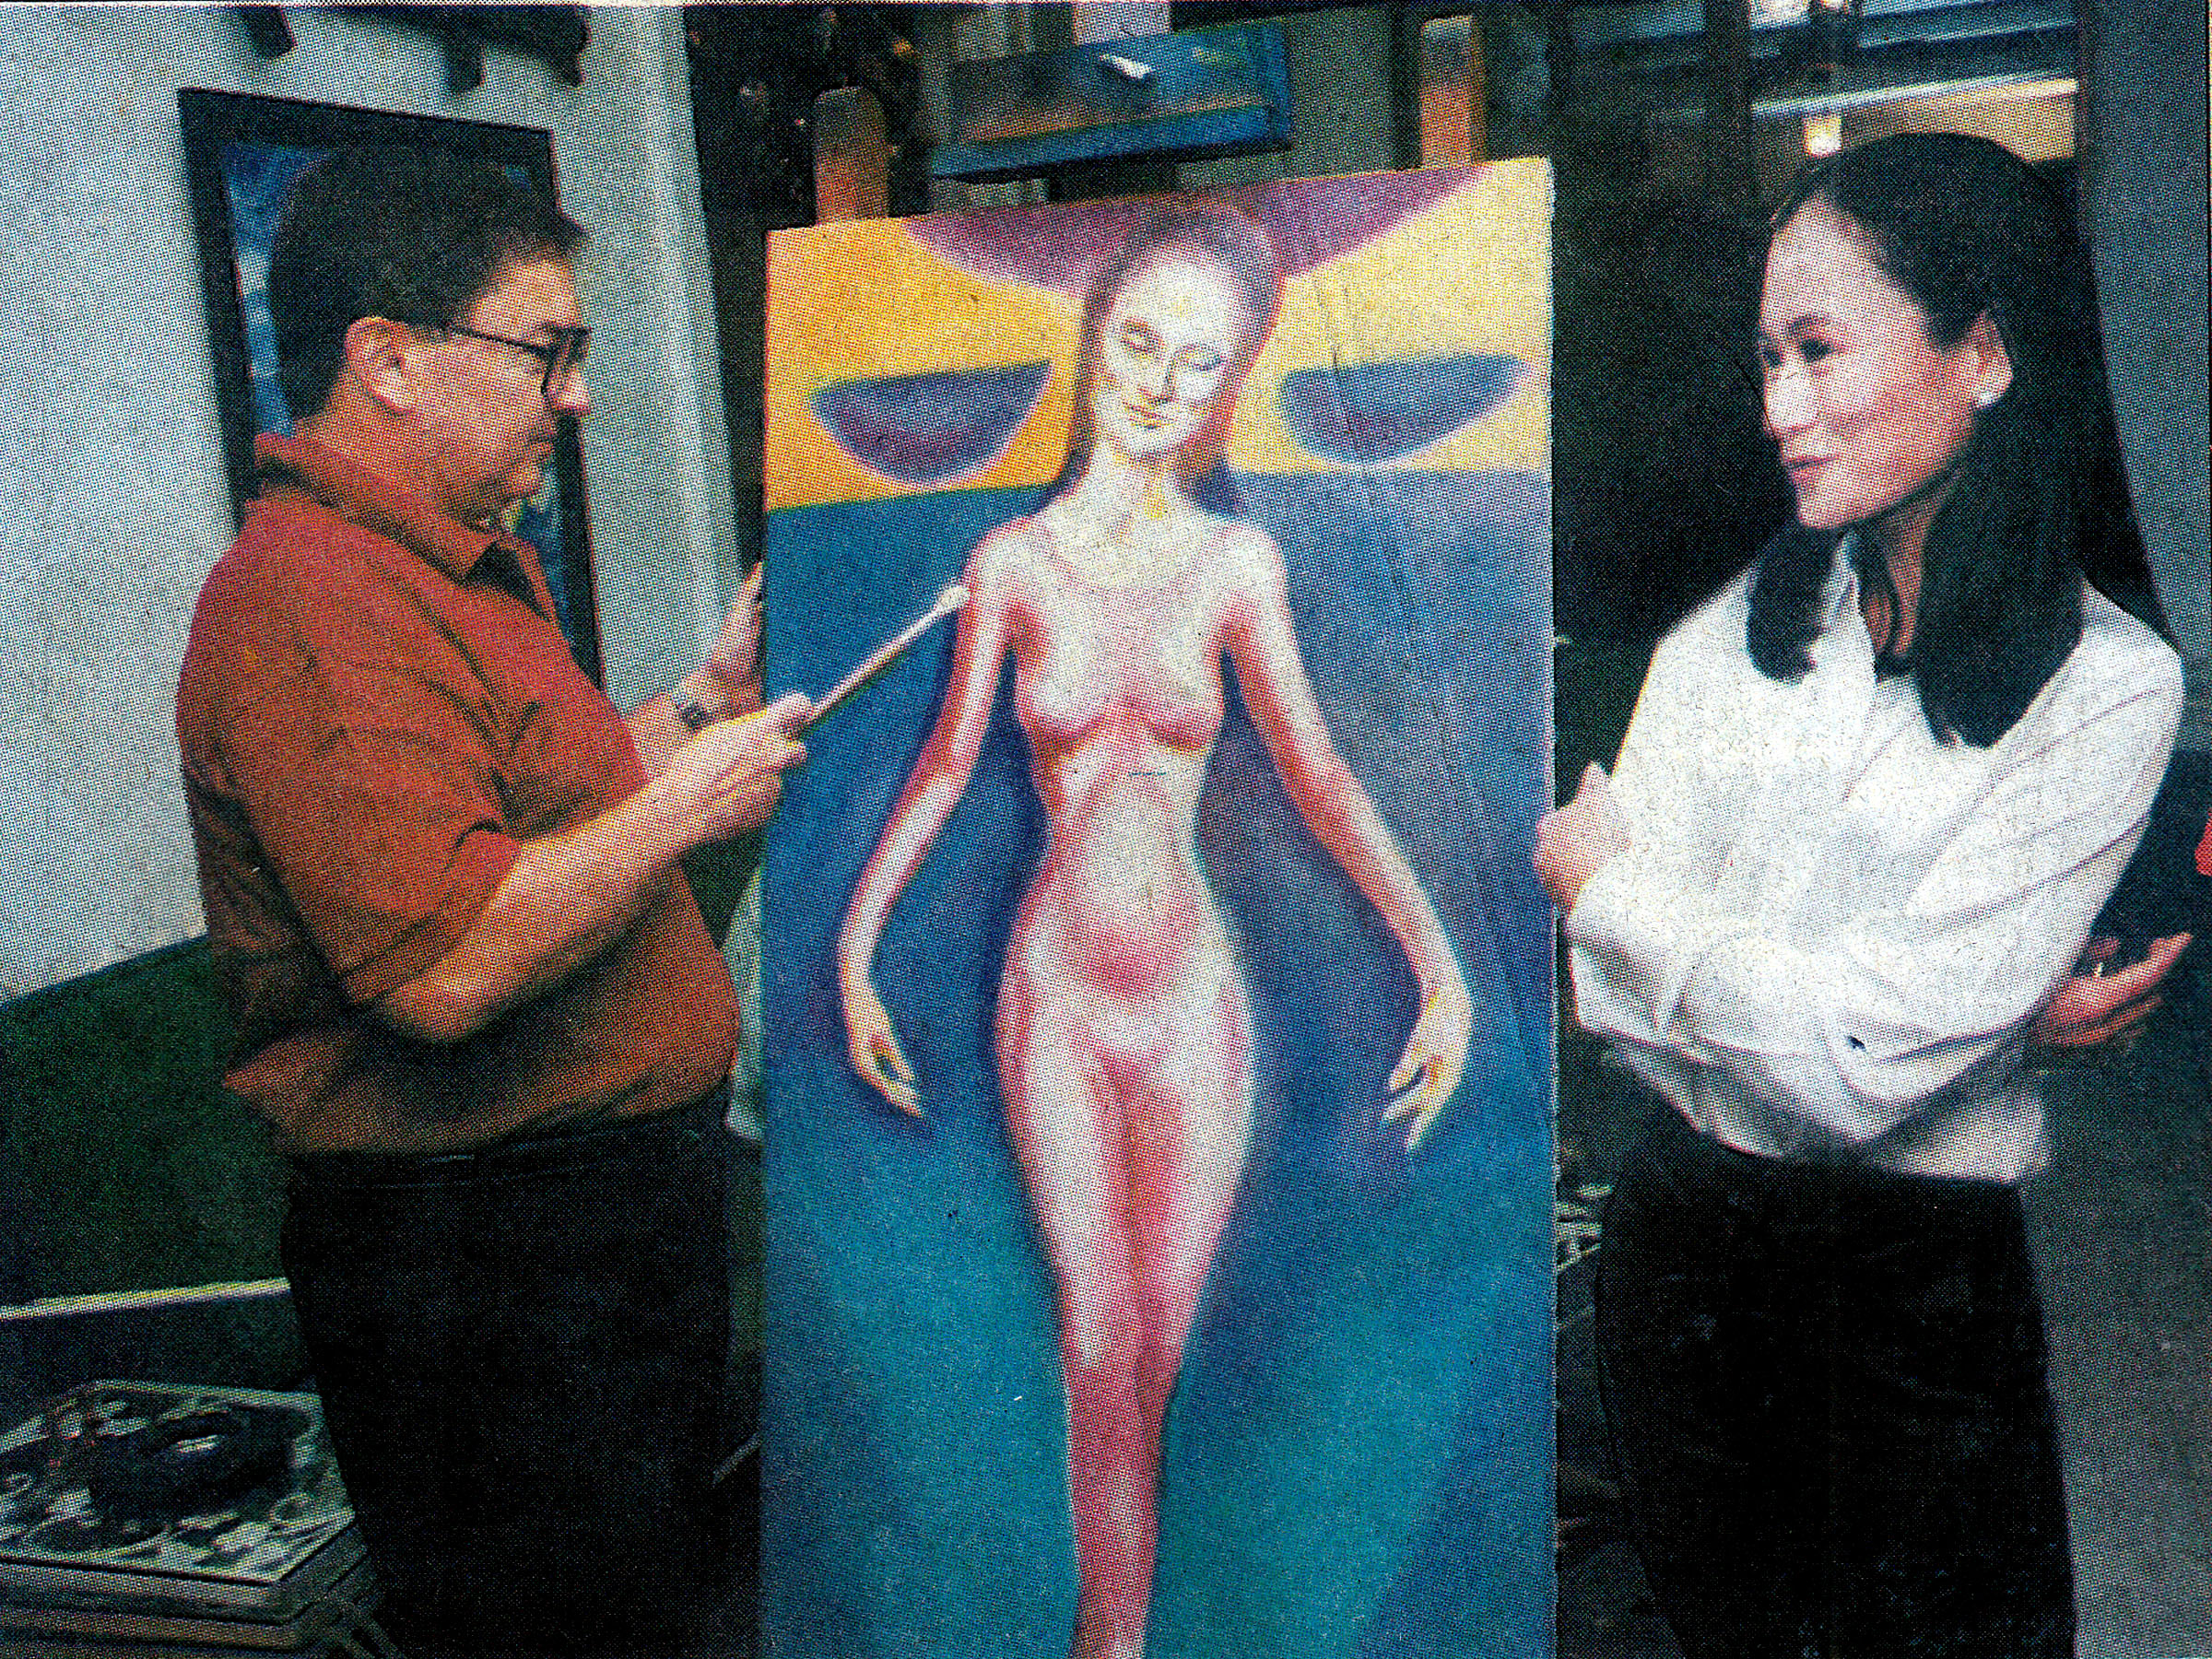 This photo culled from a  Philippine Star  clipping shows Fred with a painting of Lisa that he was working on in 1997.